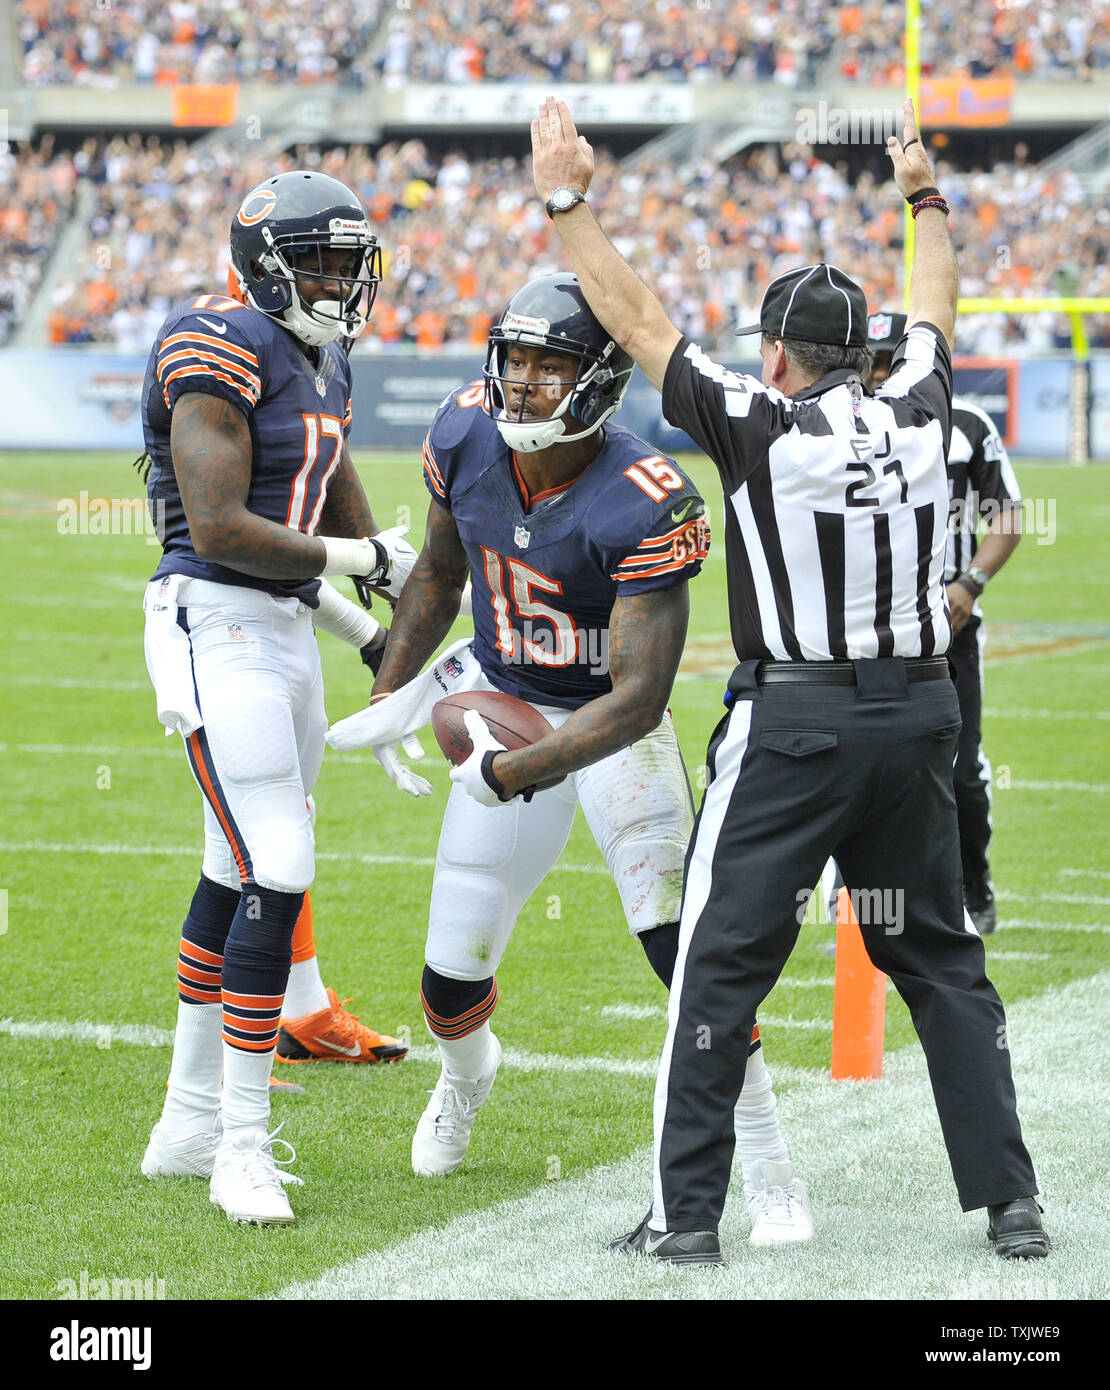 timeless design 69985 48312 Chicago Bears wide receivers Alshon Jeffery (L) and Brandon ...